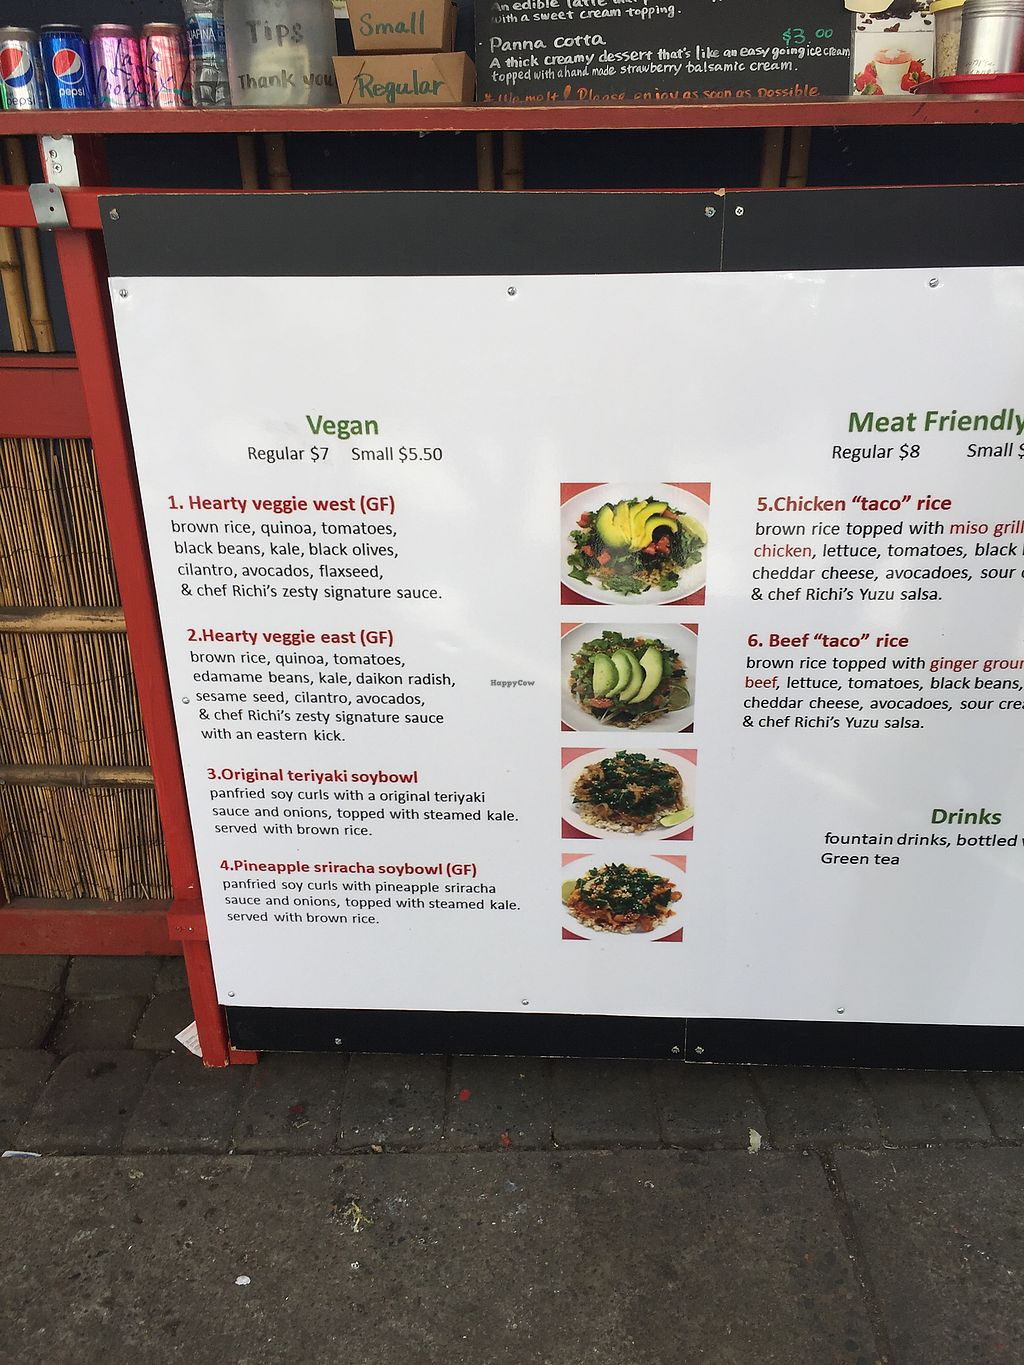 """Photo of Richi's - Food Cart  by <a href=""""/members/profile/schonstal"""">schonstal</a> <br/>Vegan bowls <br/> March 12, 2018  - <a href='/contact/abuse/image/114085/369930'>Report</a>"""